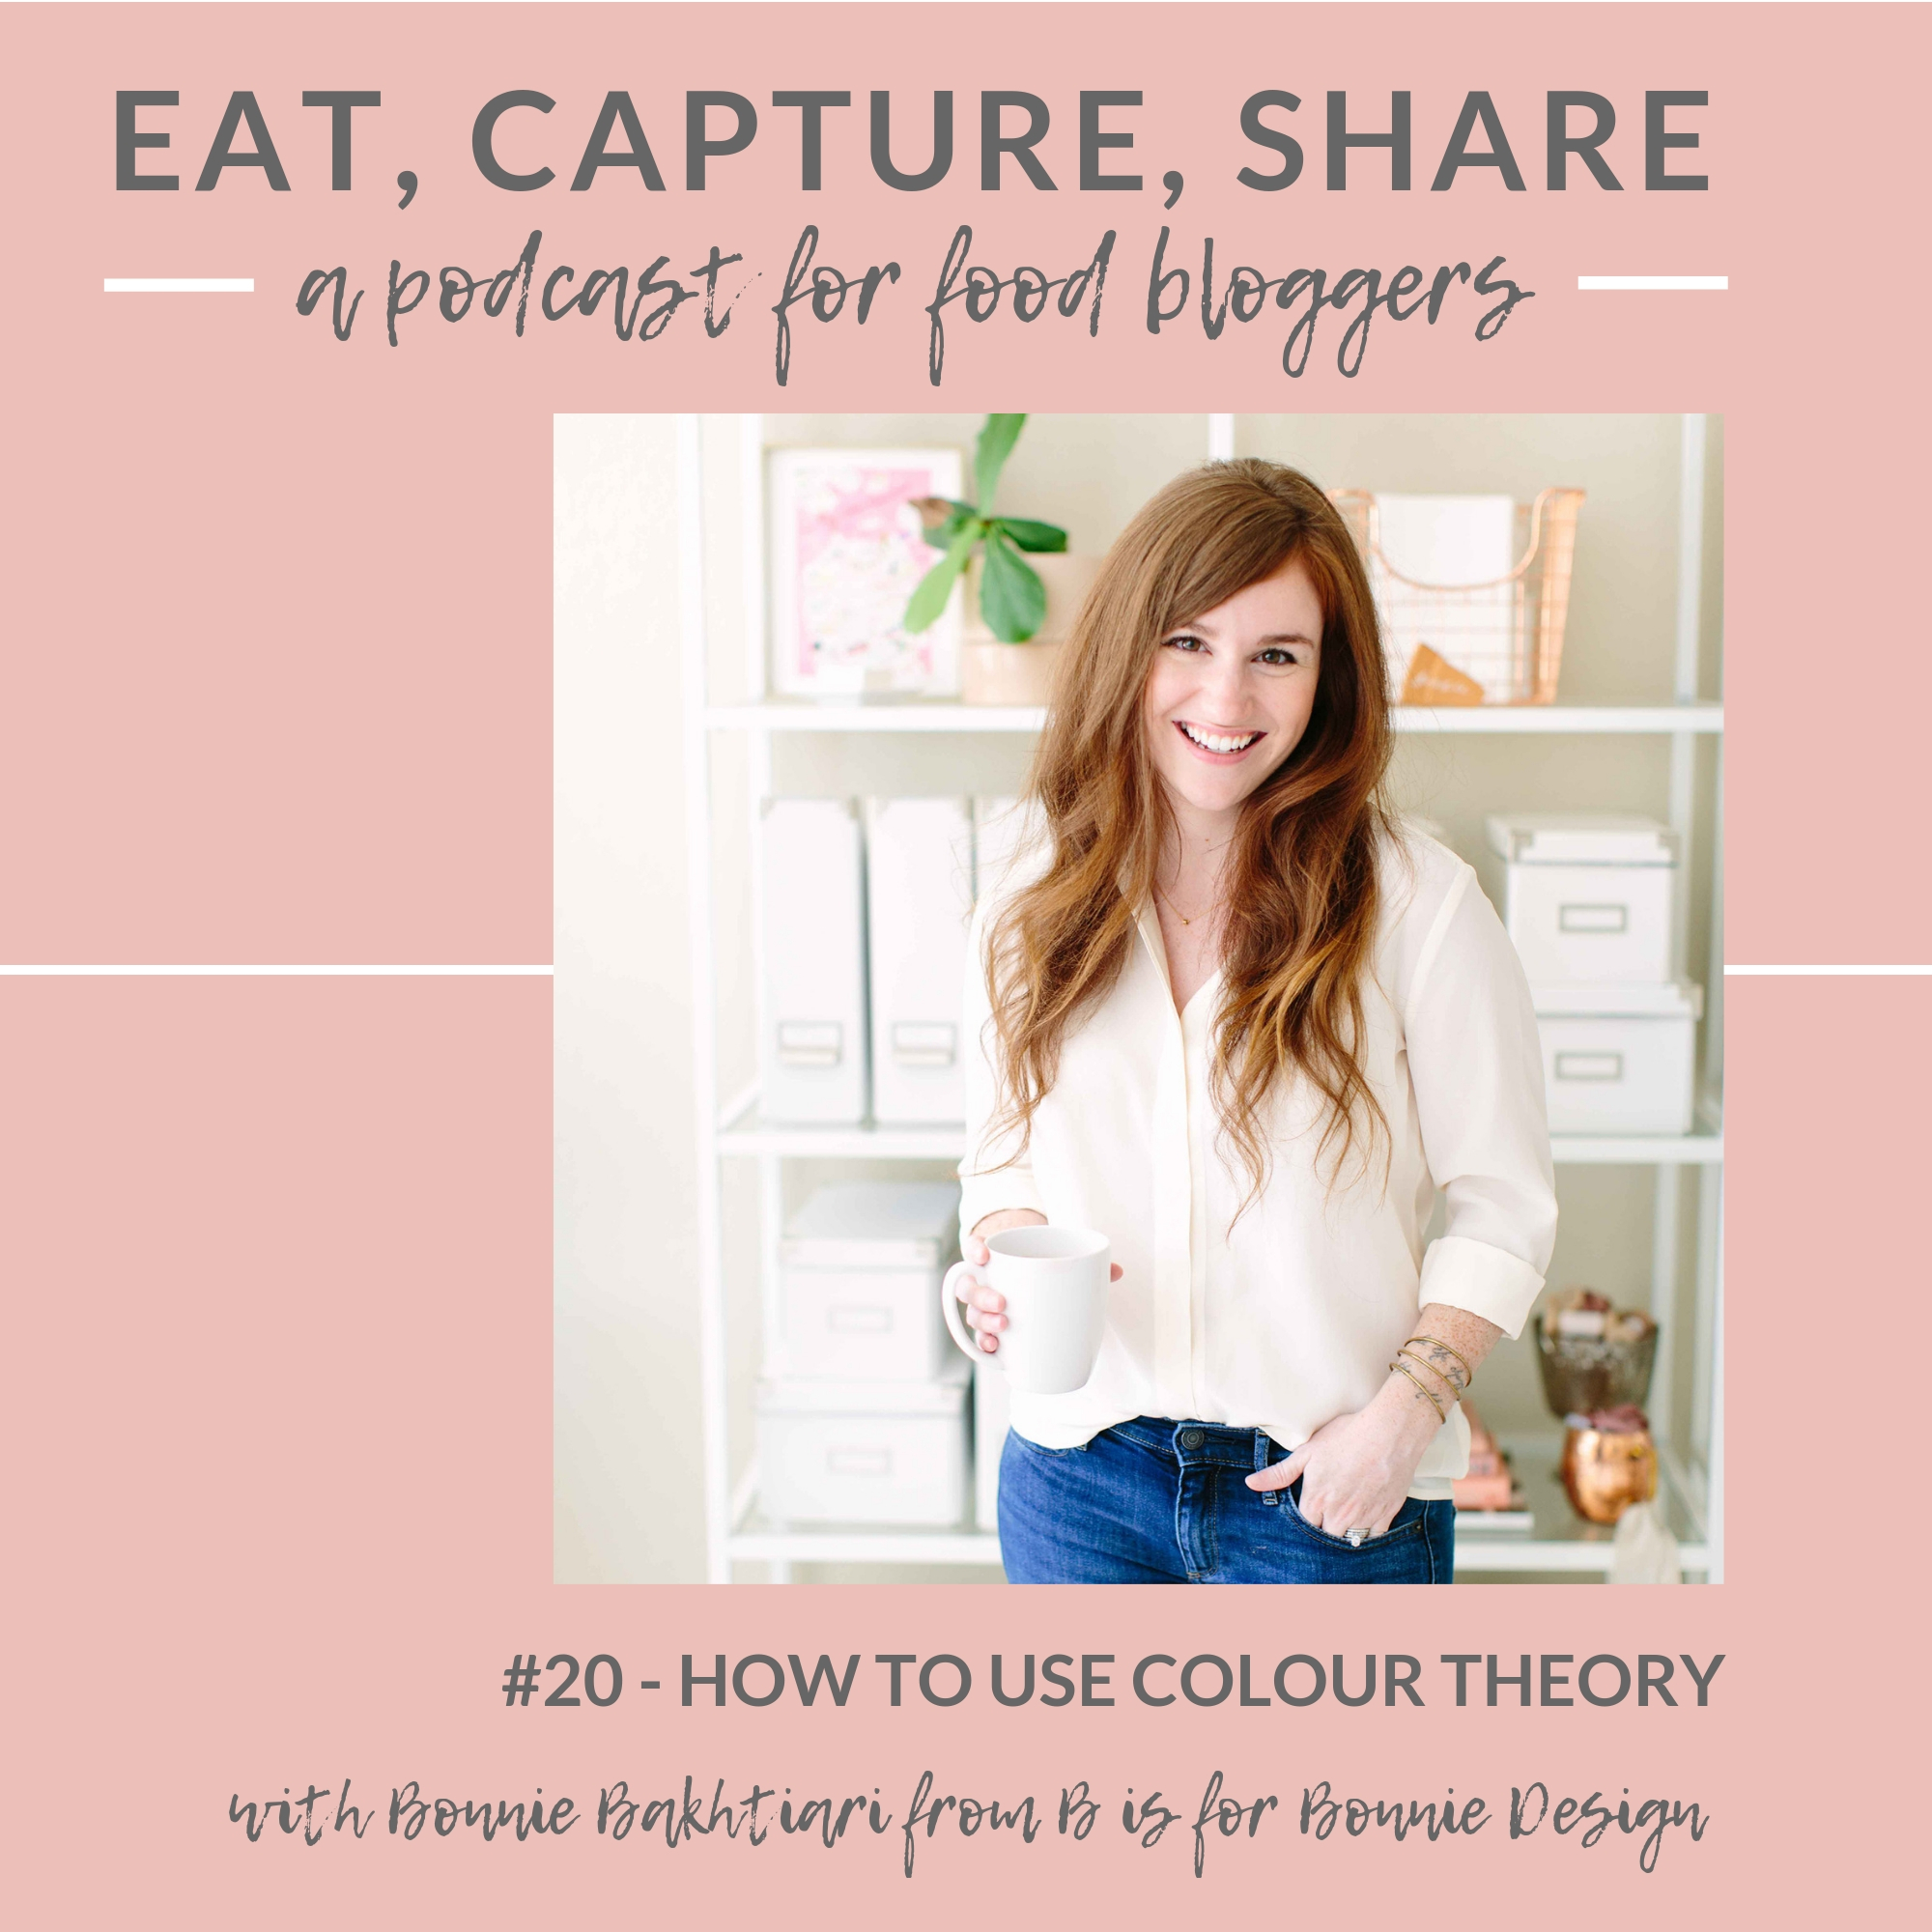 Colour theory and colour wheel ideas for instagram - Eat, Capture, Share Podcast